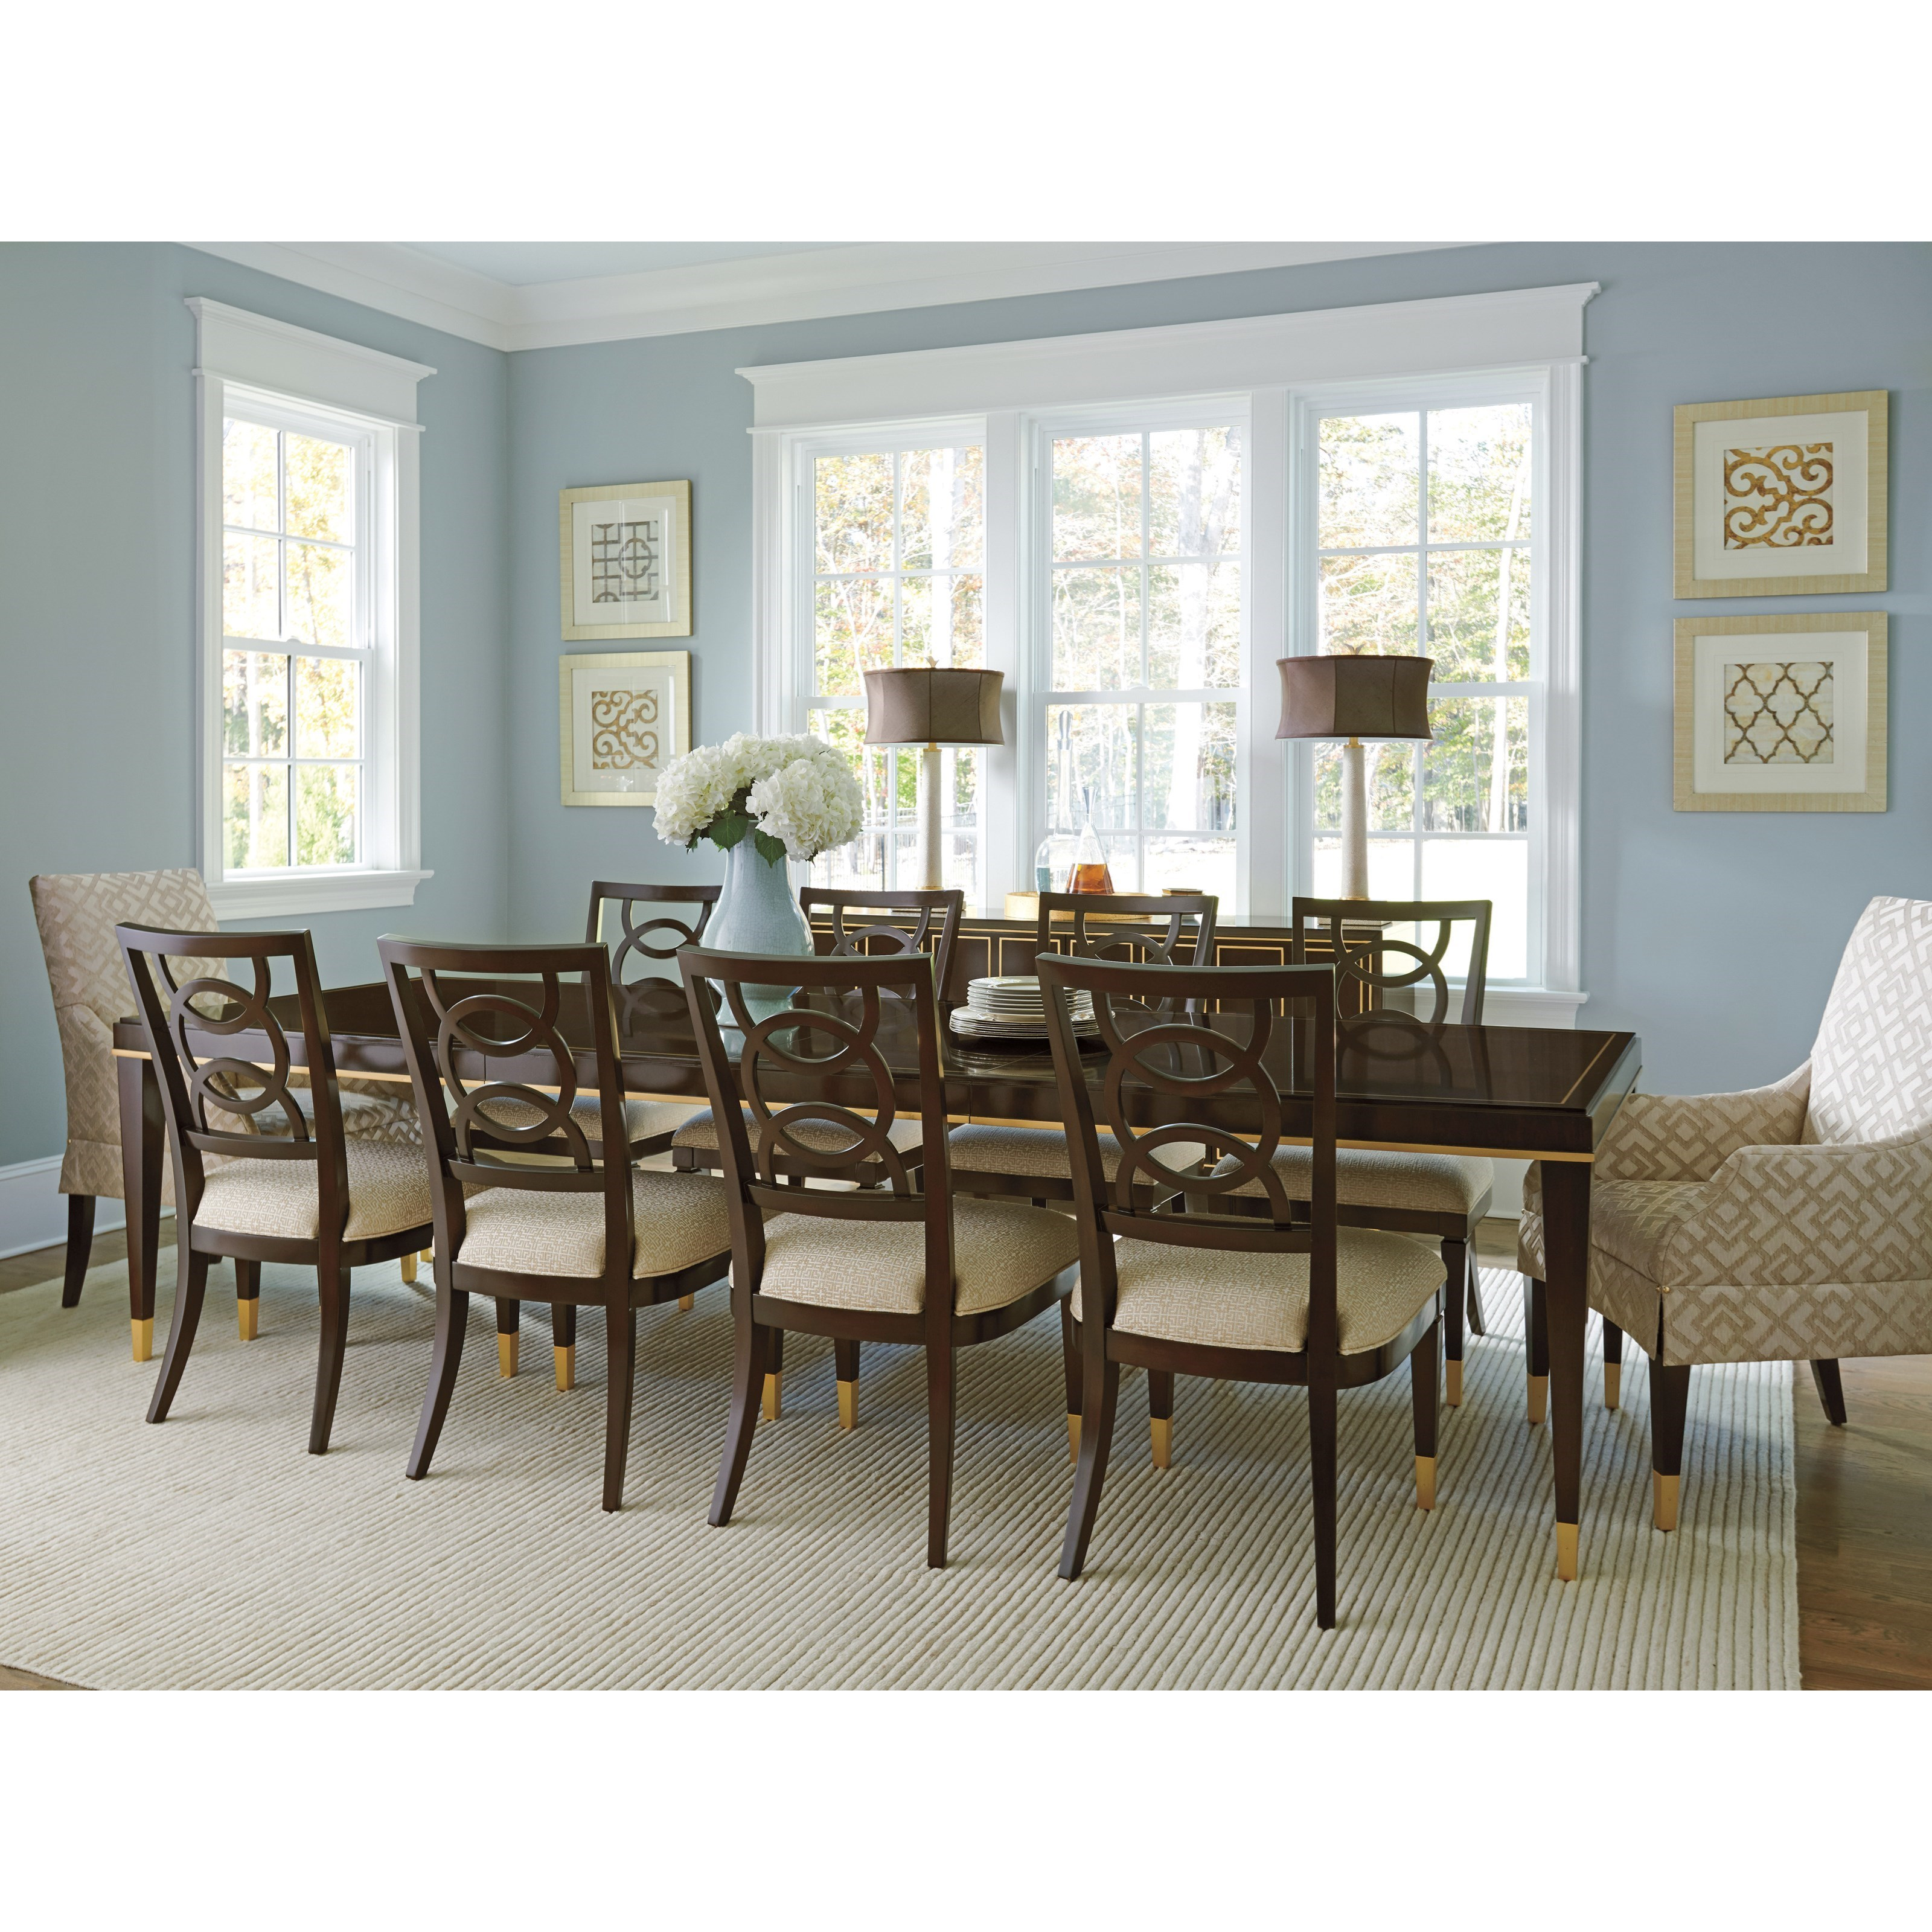 Carlyle Dining Room Set: Lexington Carlyle Transitional 11-Piece Dining Set With